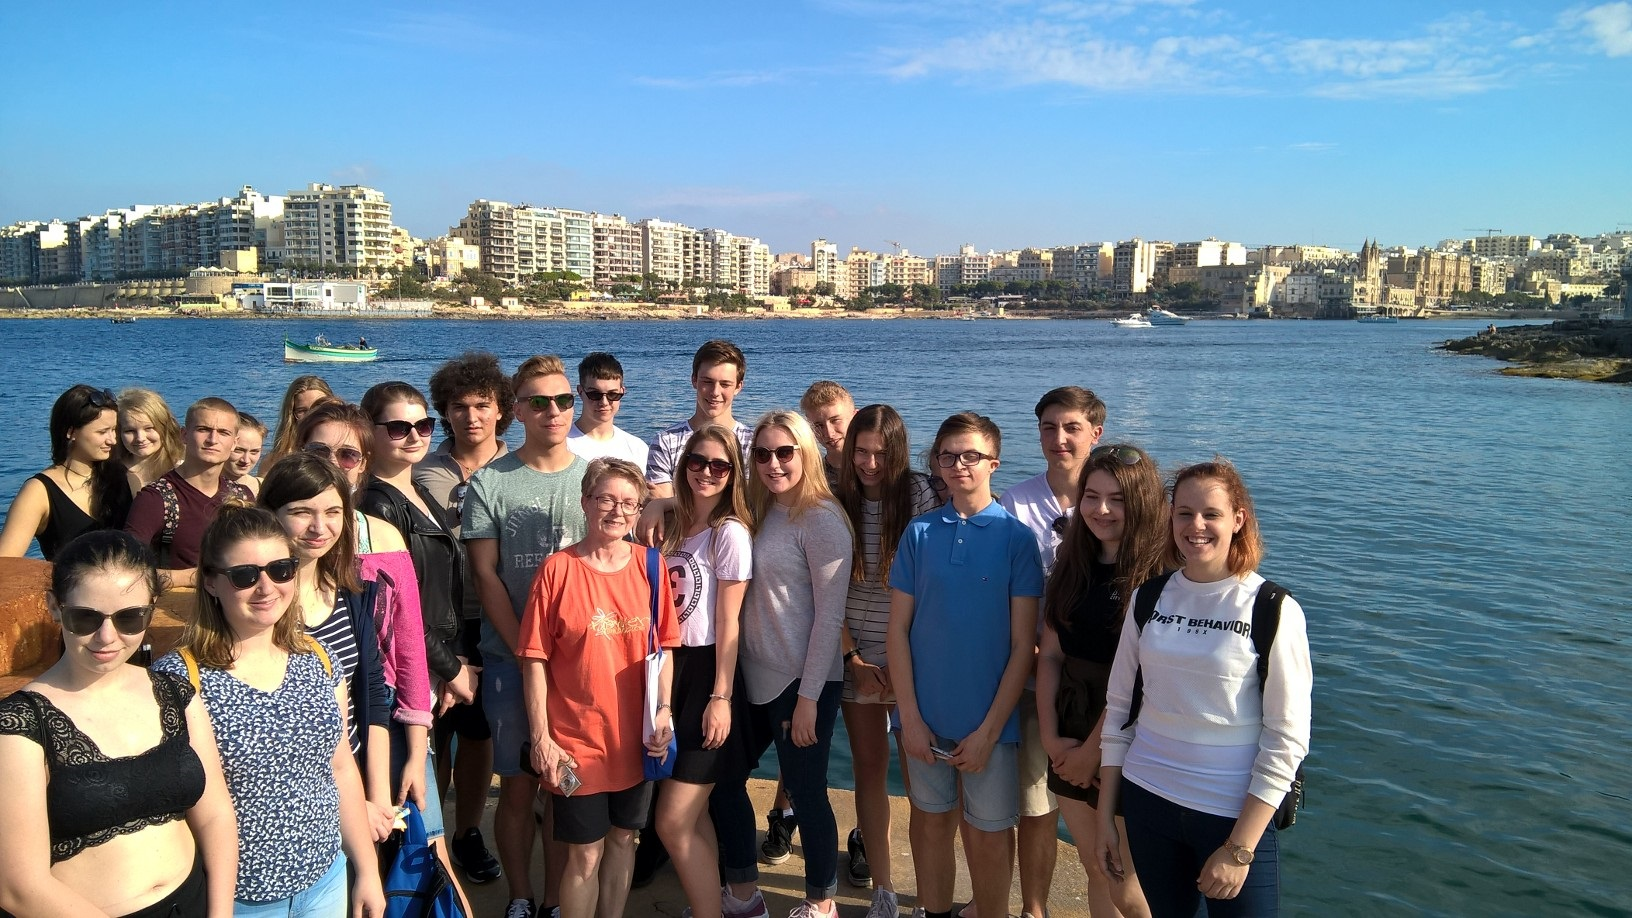 Gateway School of English GSE Malta Summer Junior Programmes for teenagers 13 to 17 years - Orientation Walk St Julians Portomaso Marina